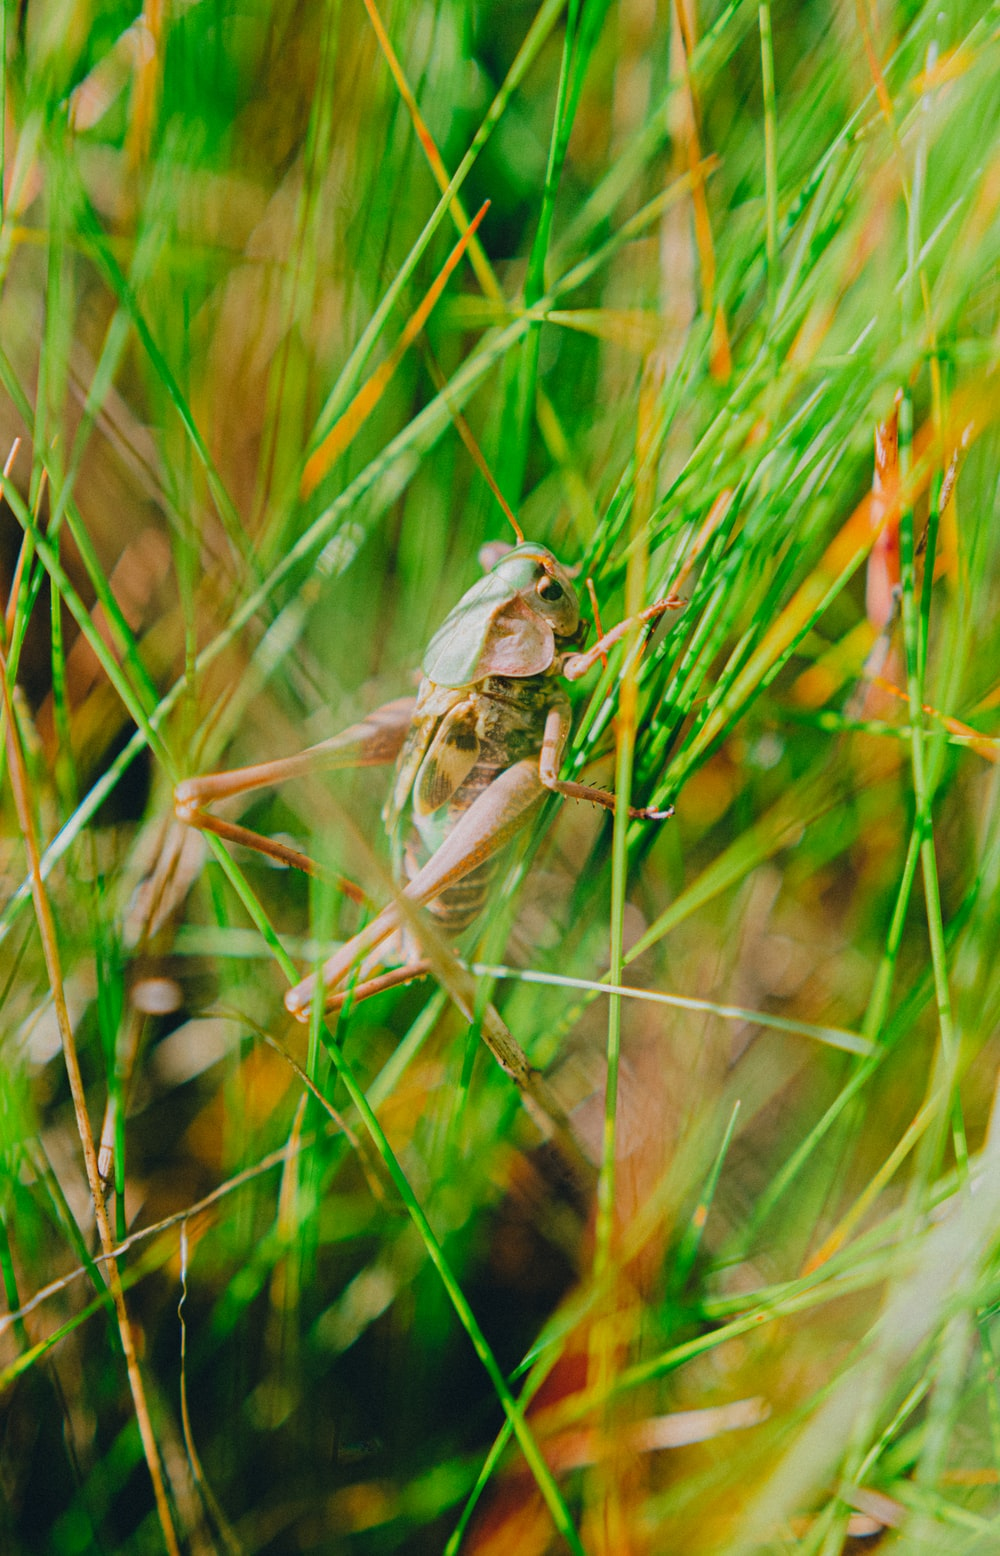 brown grasshopper perched on green grass in close up photography during daytime